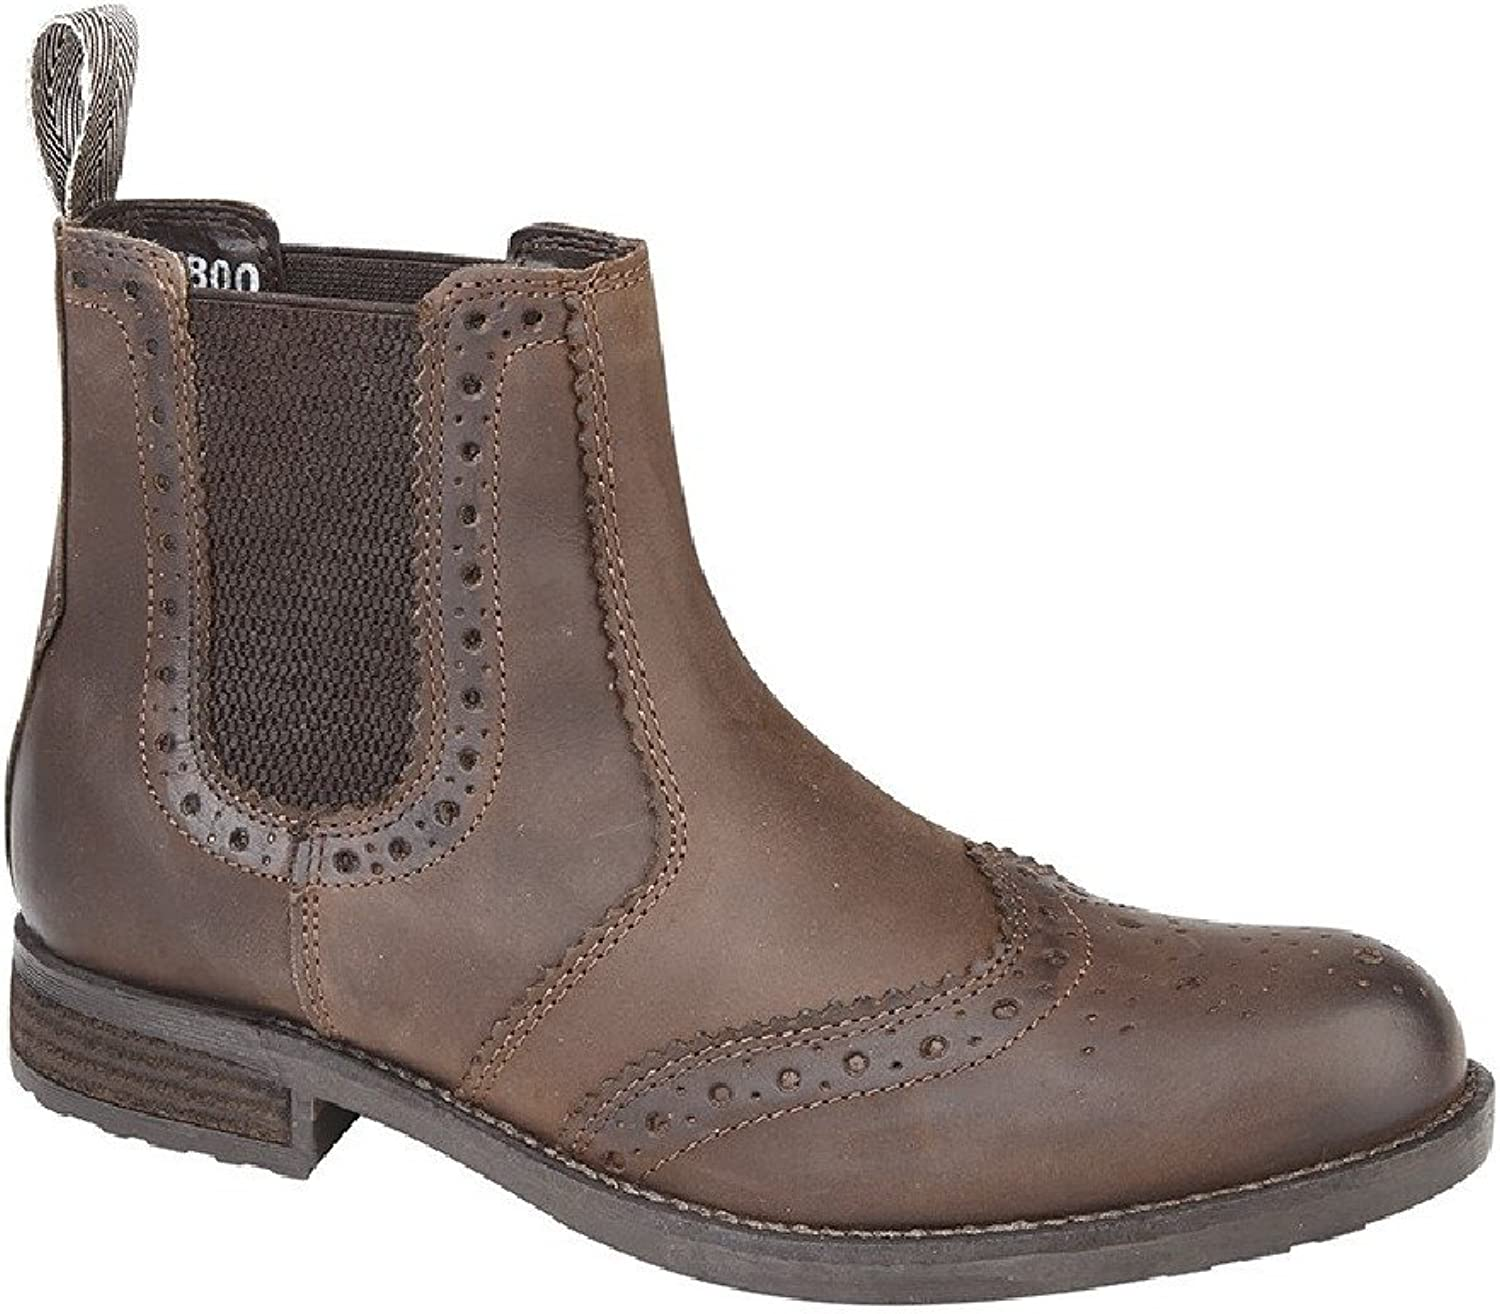 Roamers Harry Twin Gusset Brogue Chelsea Ankle Boots - Brown Waxy Softie Leather, Mens UK 10   EU 44